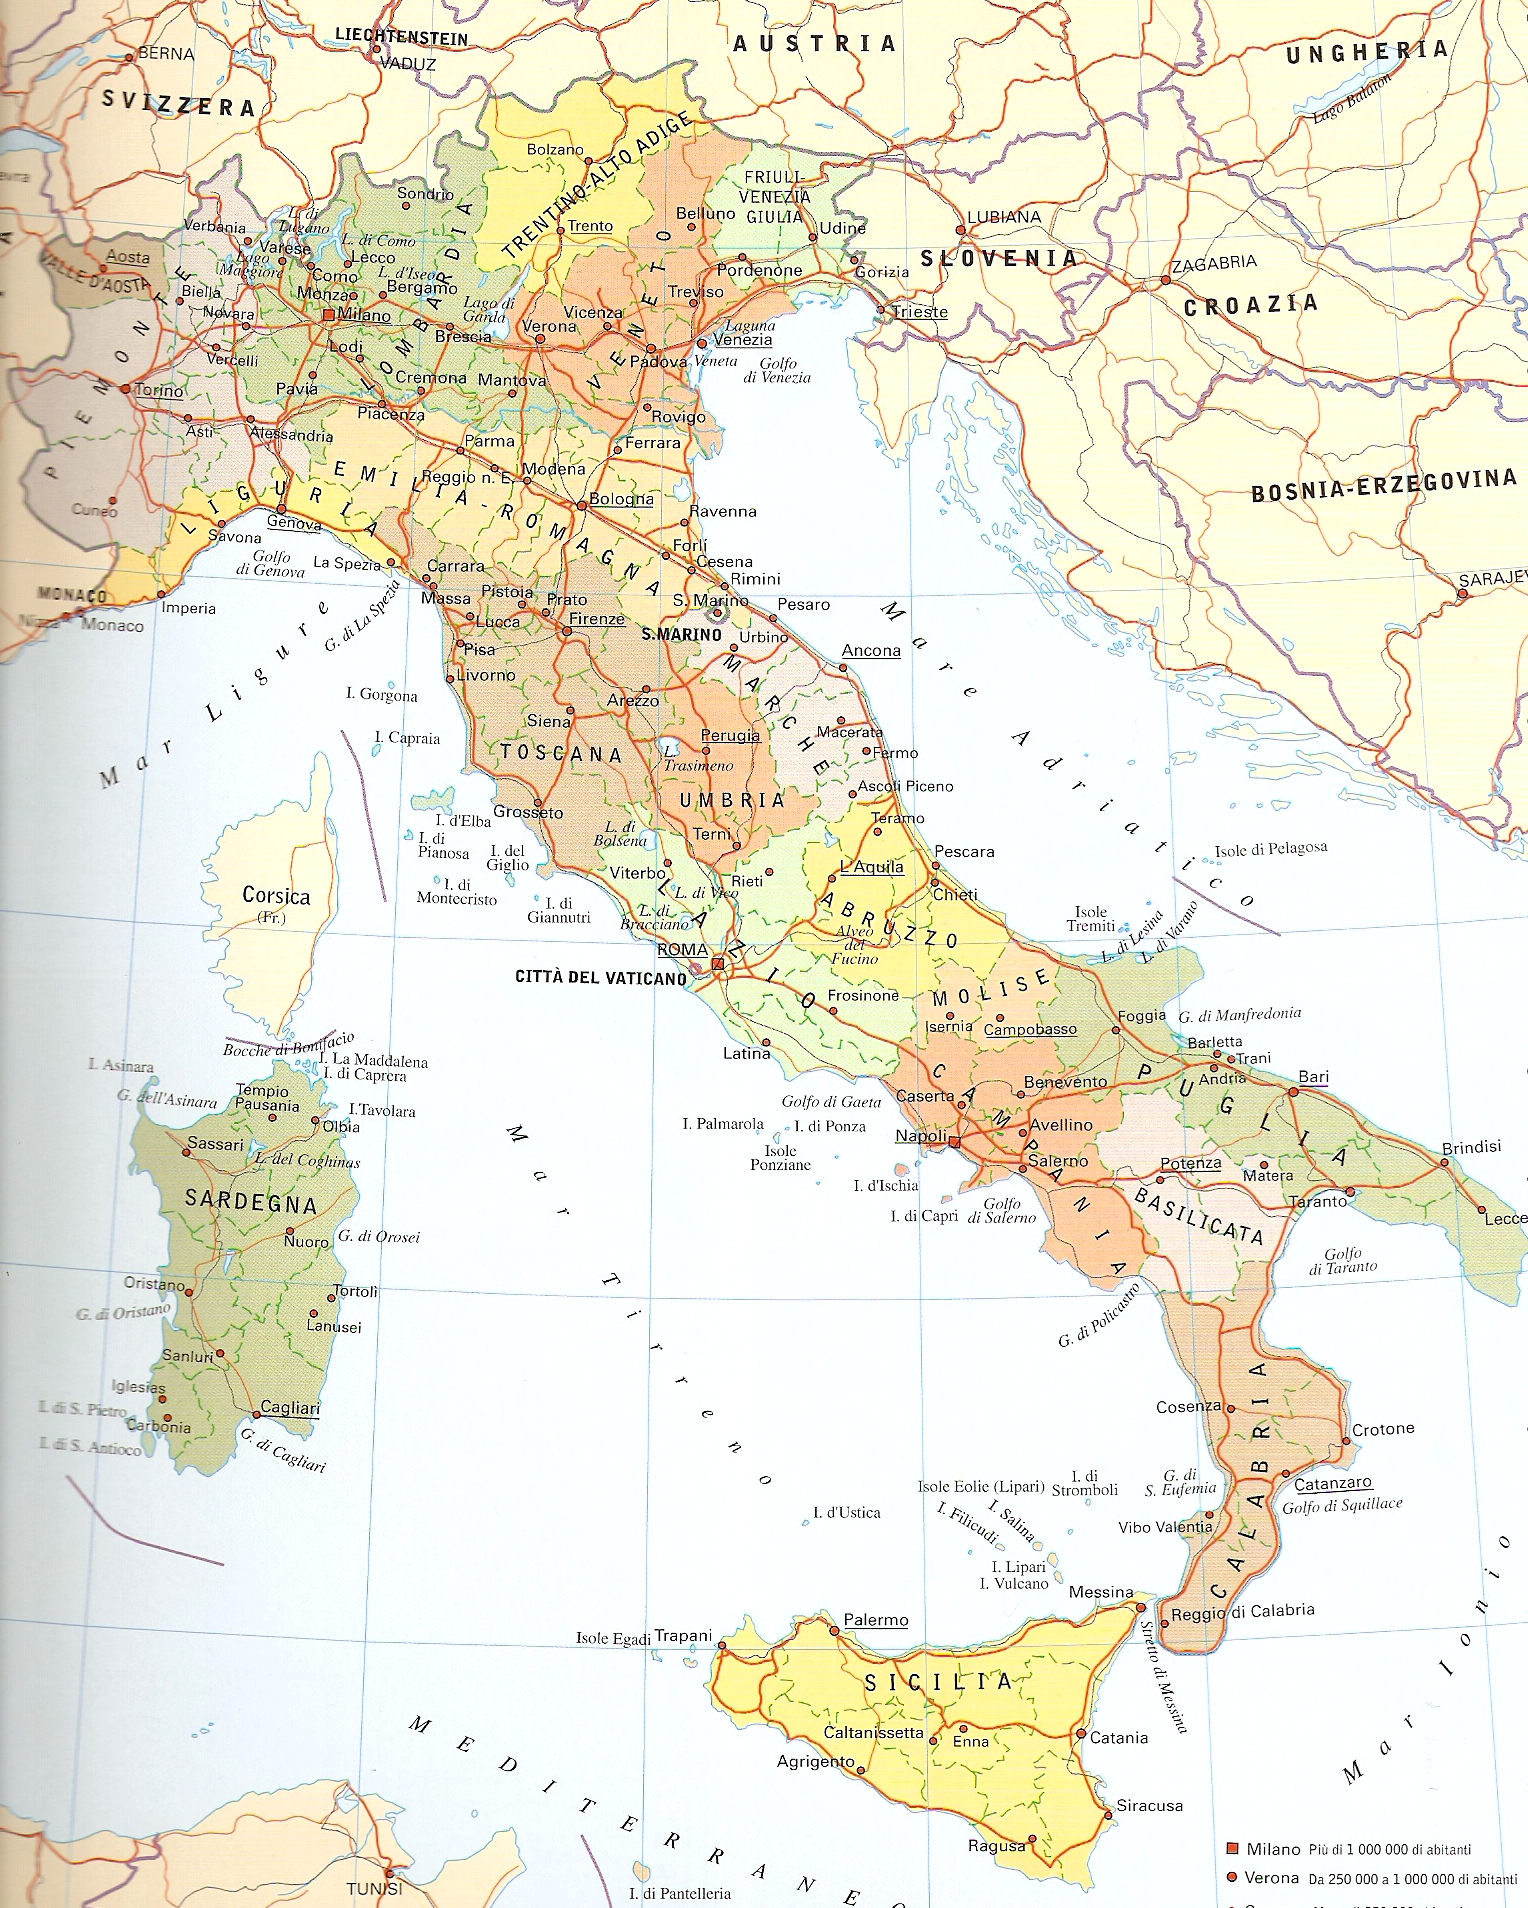 Cartina Nord Italia Geografica.Cartina Dell Italia Politica Da Stampare Cartina Dell Italia